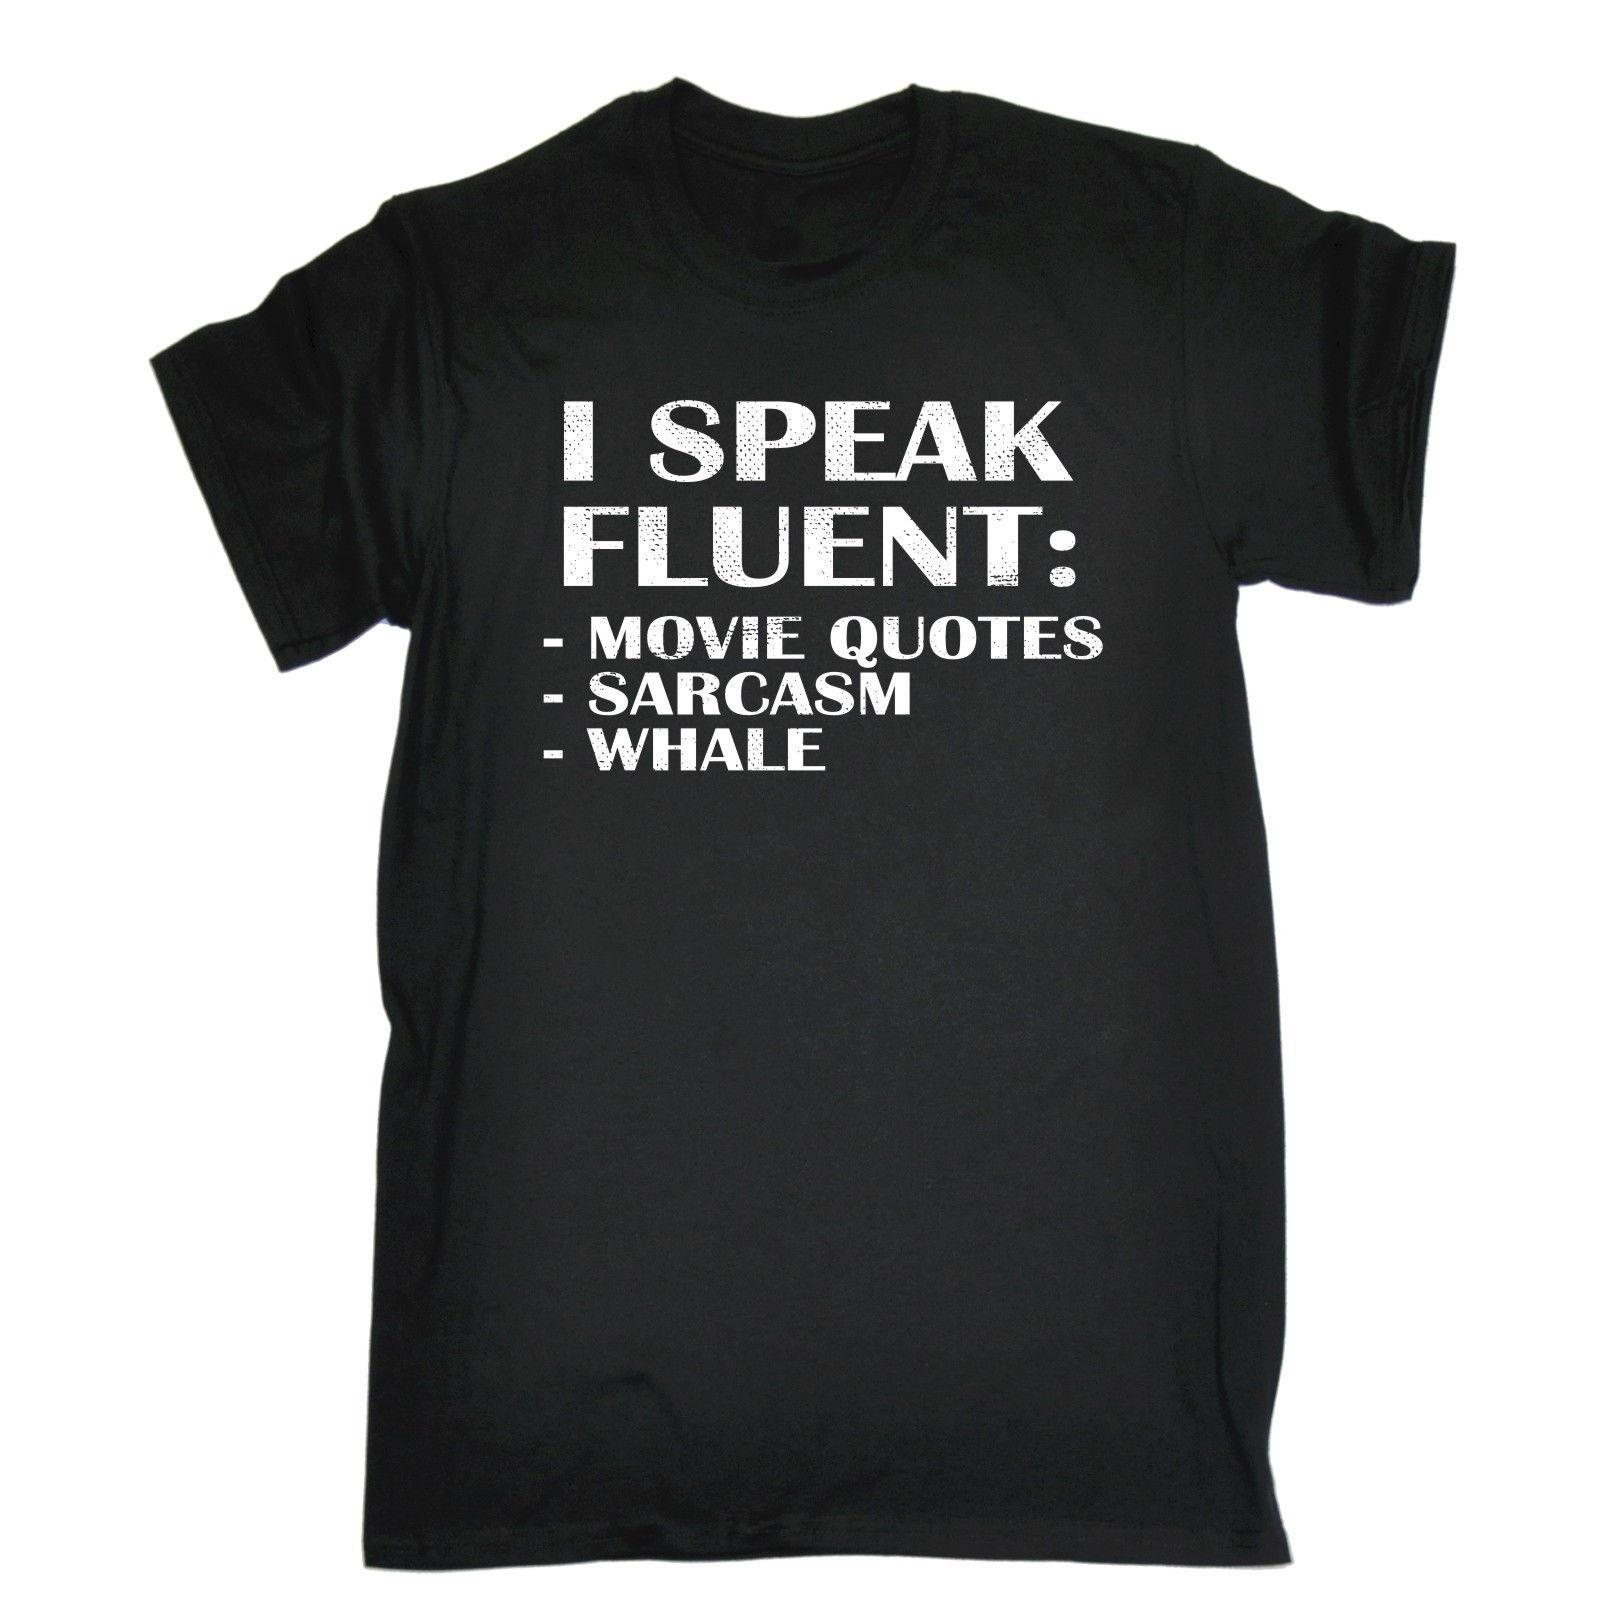 eceb0adc I Speak Fluent Movie Quotes Sarcasm Whale T SHIRT Movie Comedy Gift  Birthday Funny Casual Tee Funniest Tee Shirts Fun Tee Shirt From Fatcuckoo,  ...